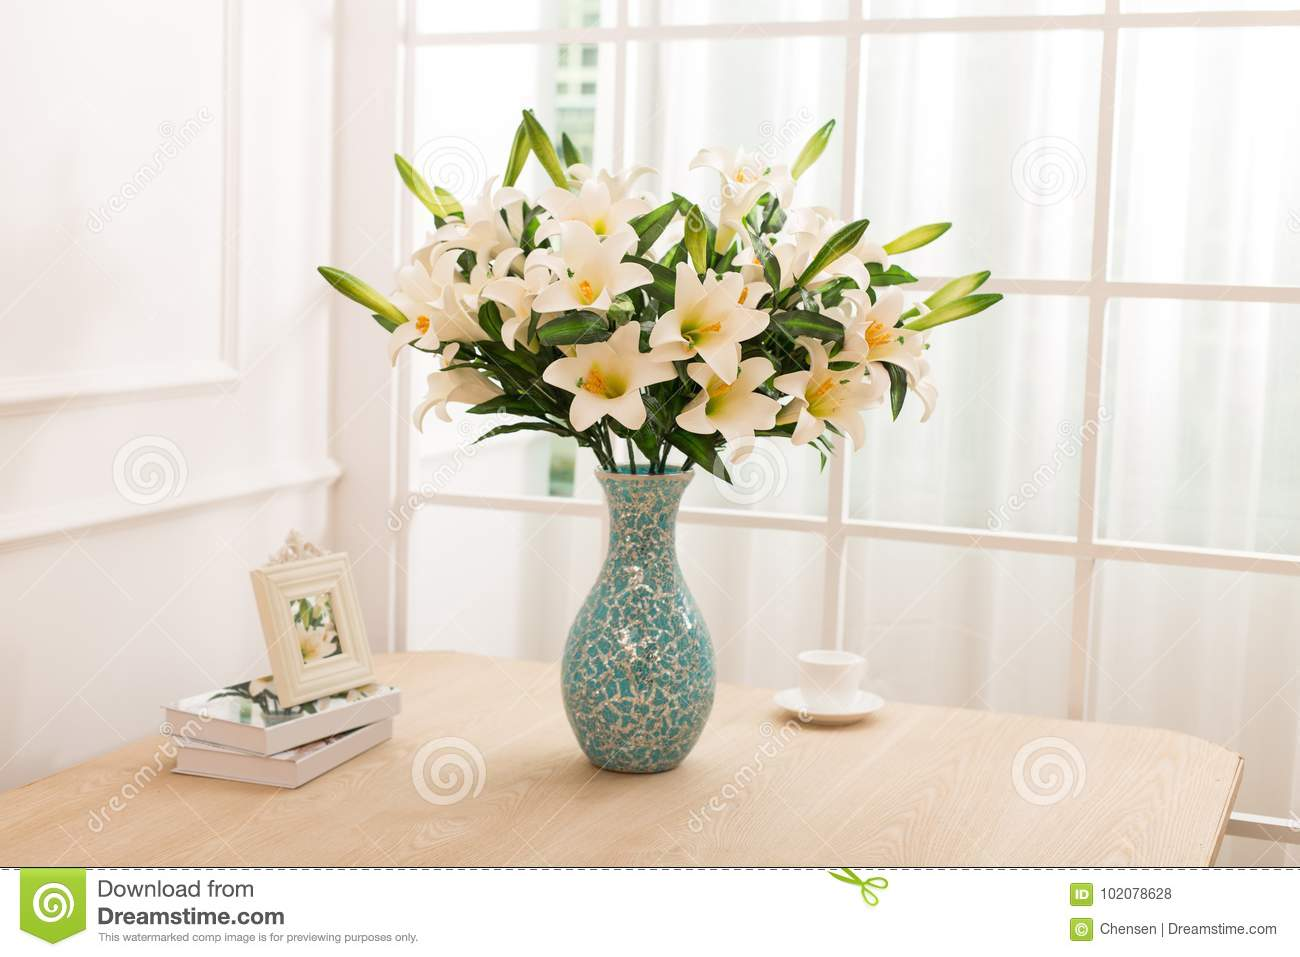 Flower Arrangement On Table Office Desk Stock Photo Image Of Flower Interior 102078628